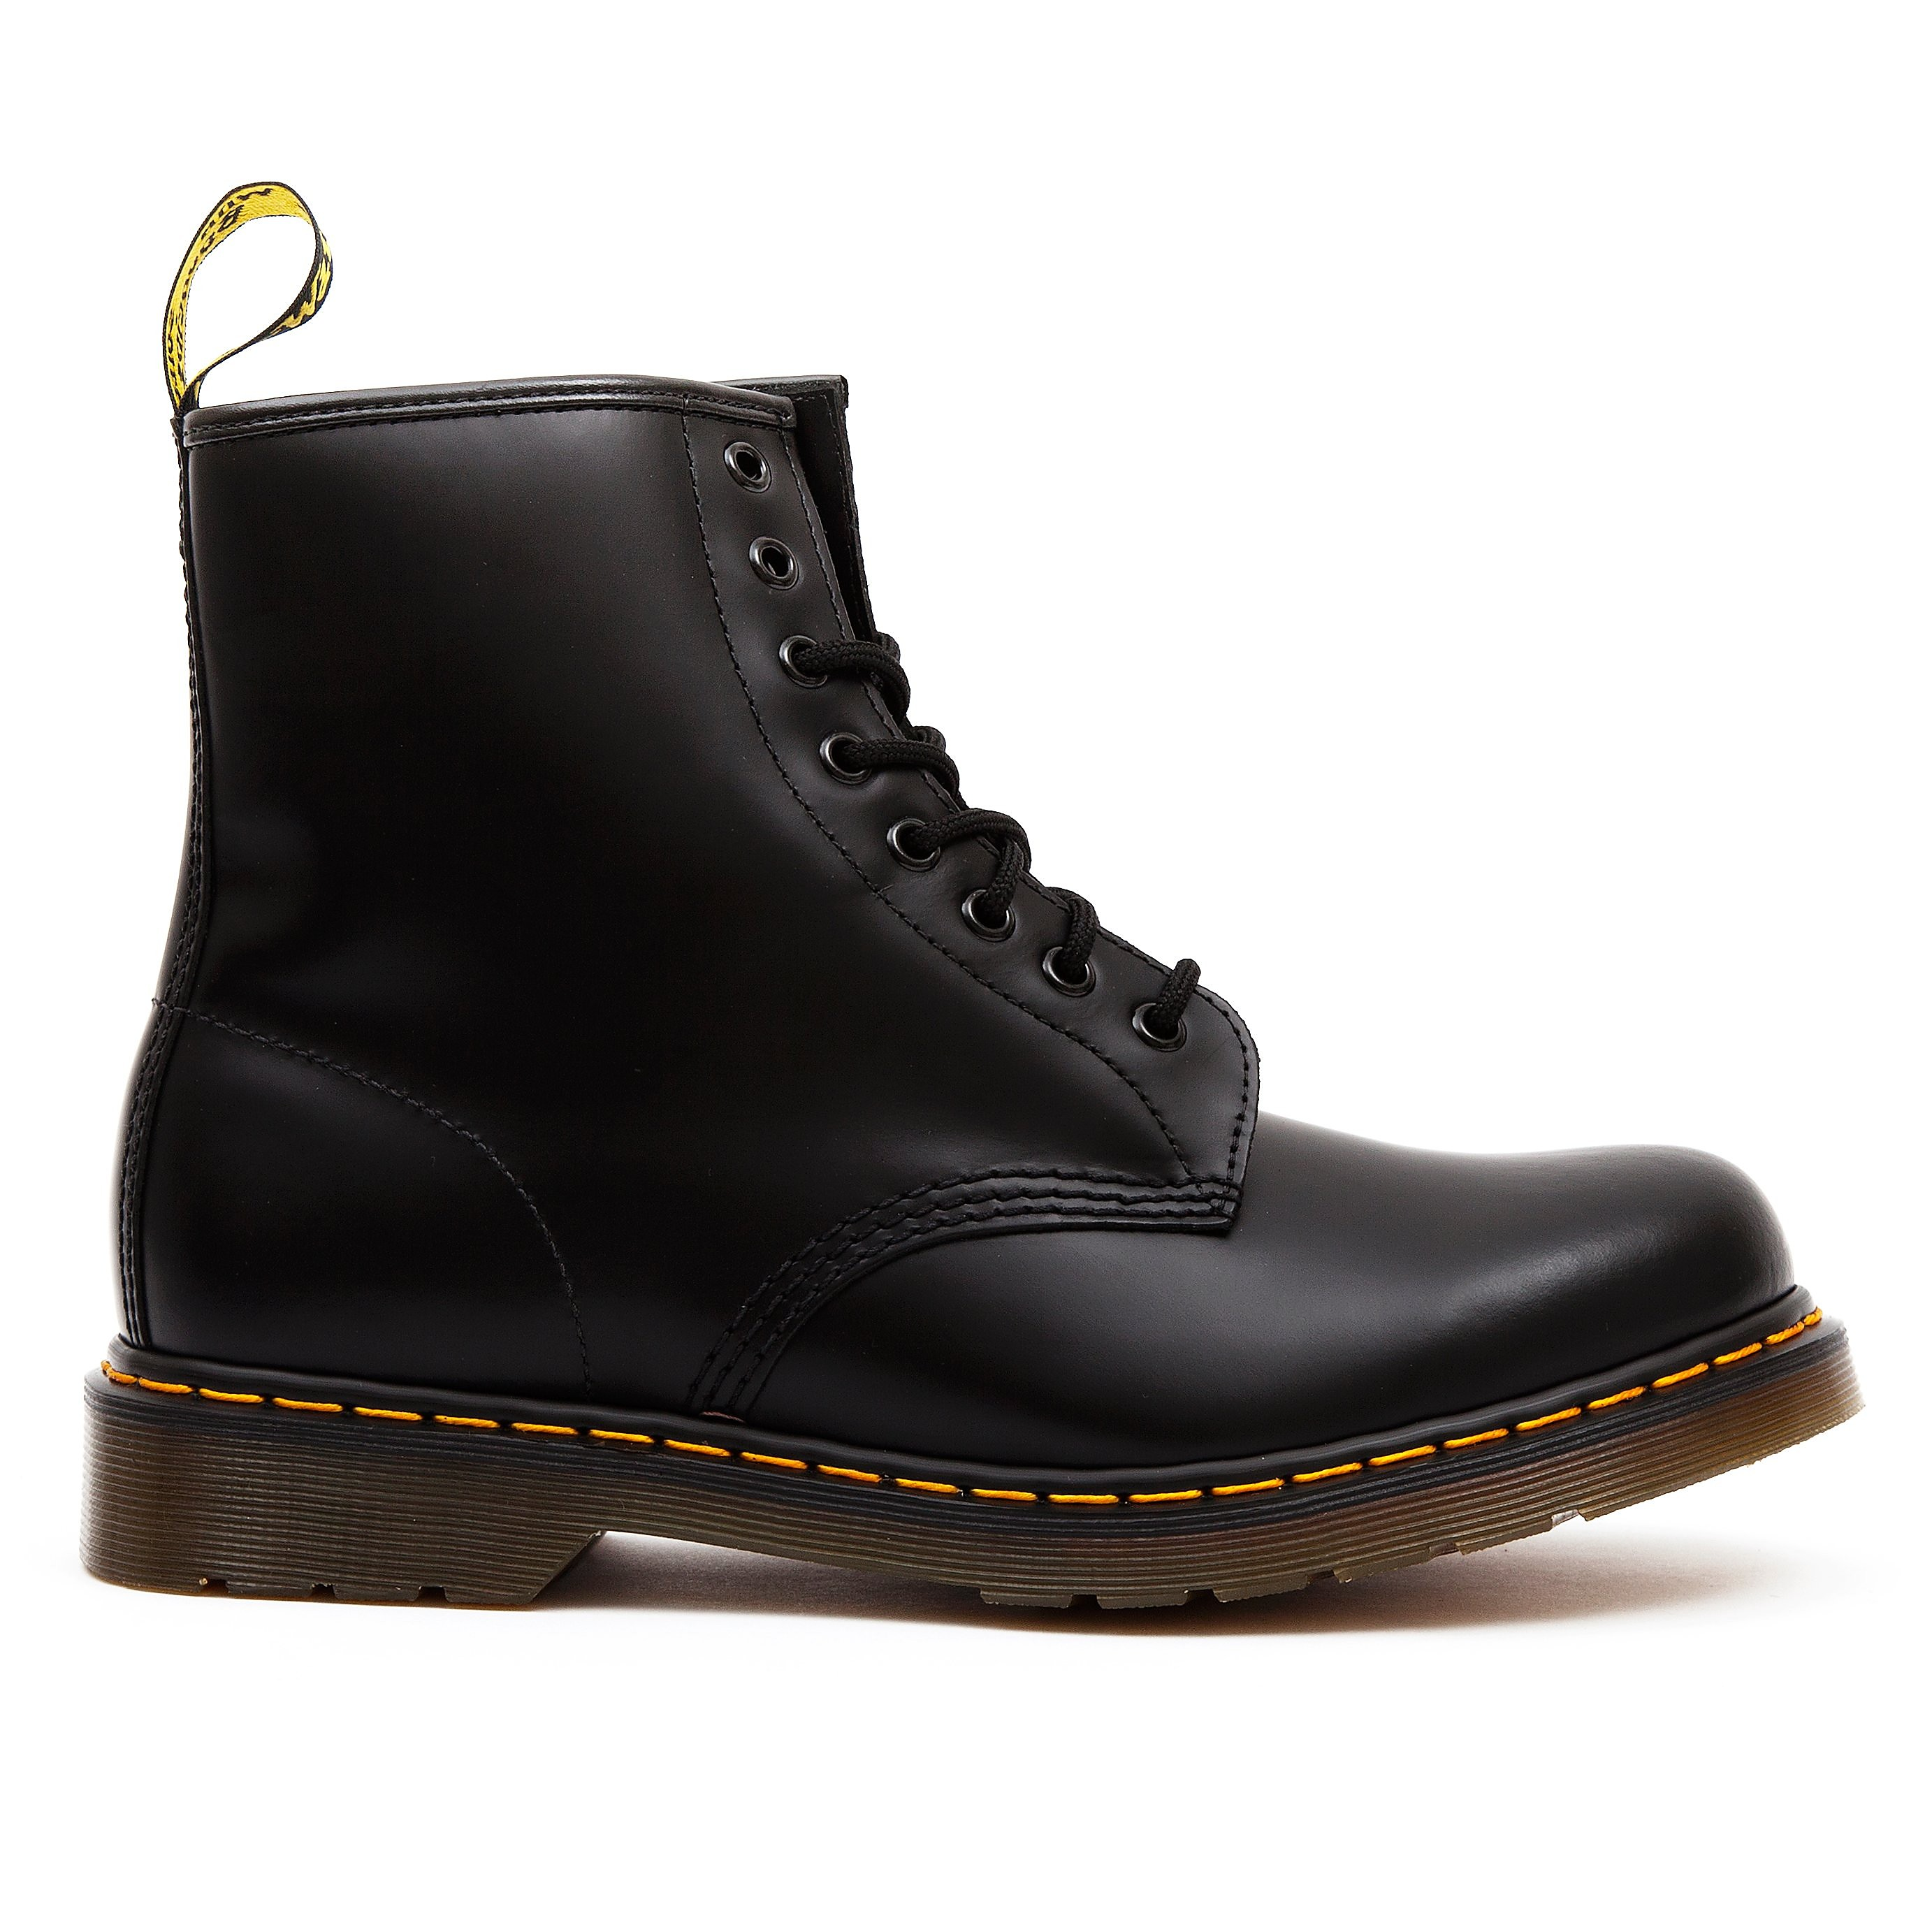 Dr Martens Women's 1460 Leather High Top Lace-Up Boots - Black